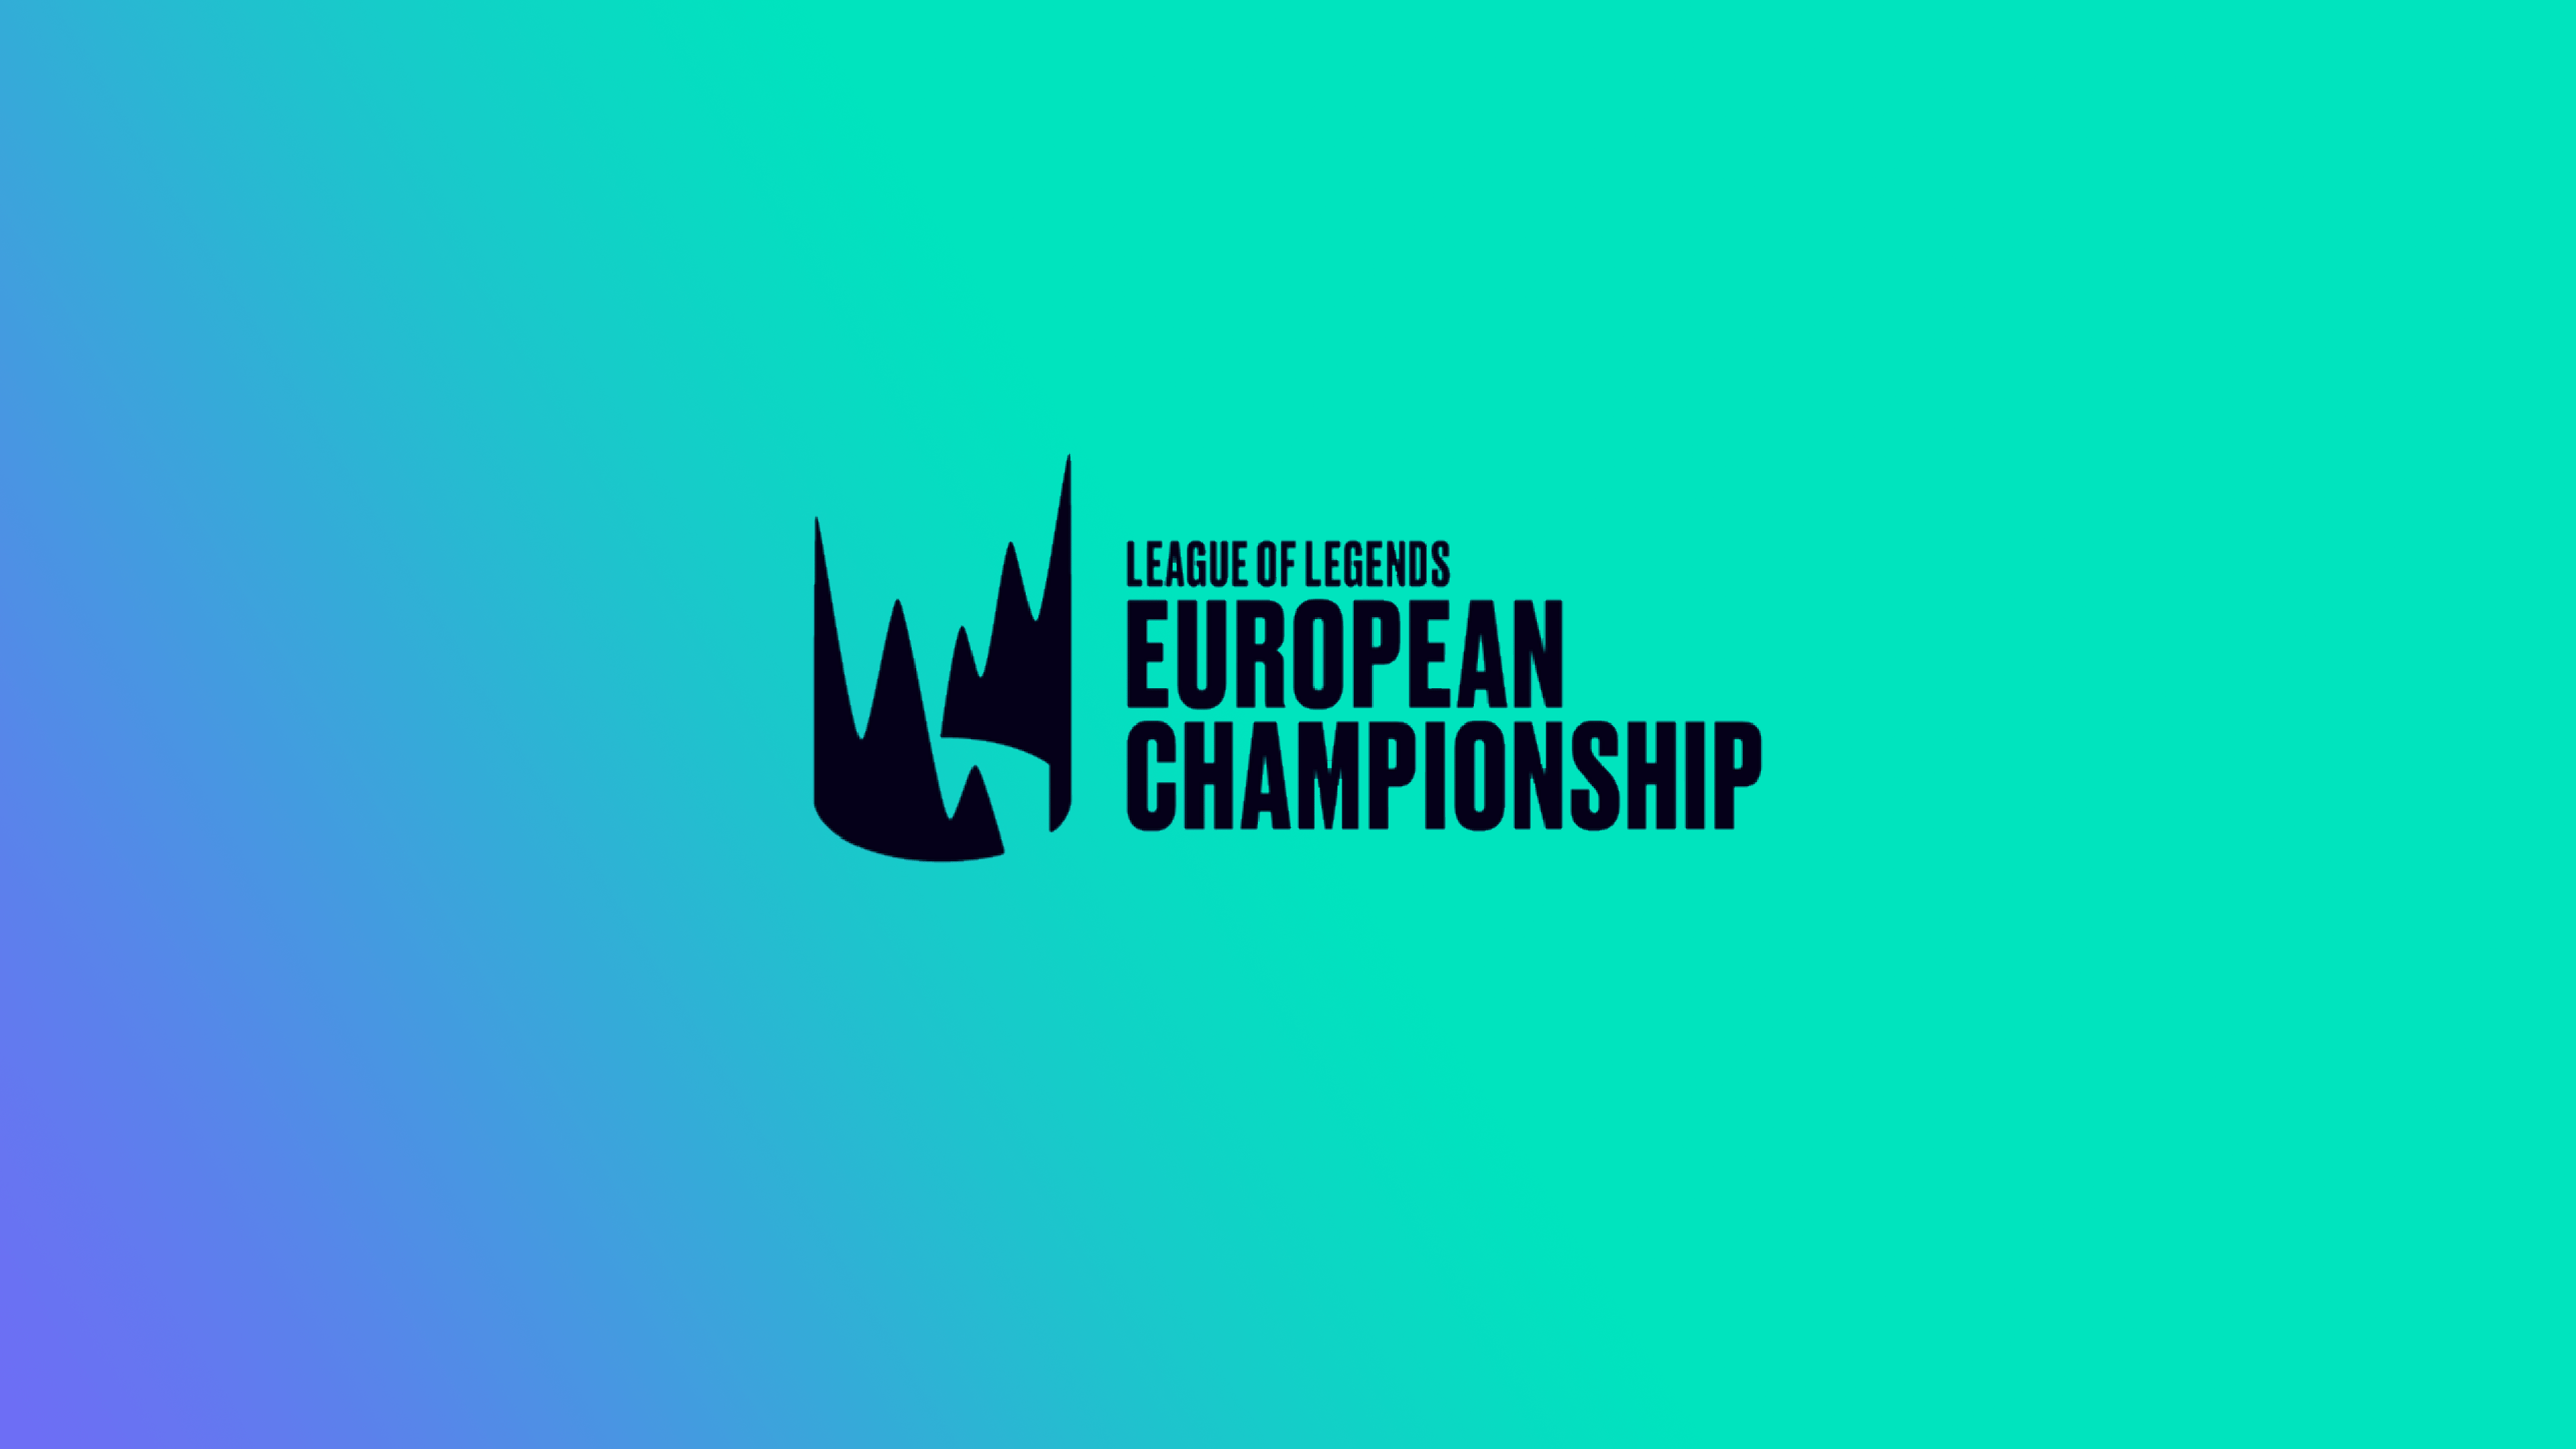 The League European Championship Is Unlikely To Move To Best-Of-2 Or Best-Of-3 Format According to Commissioner